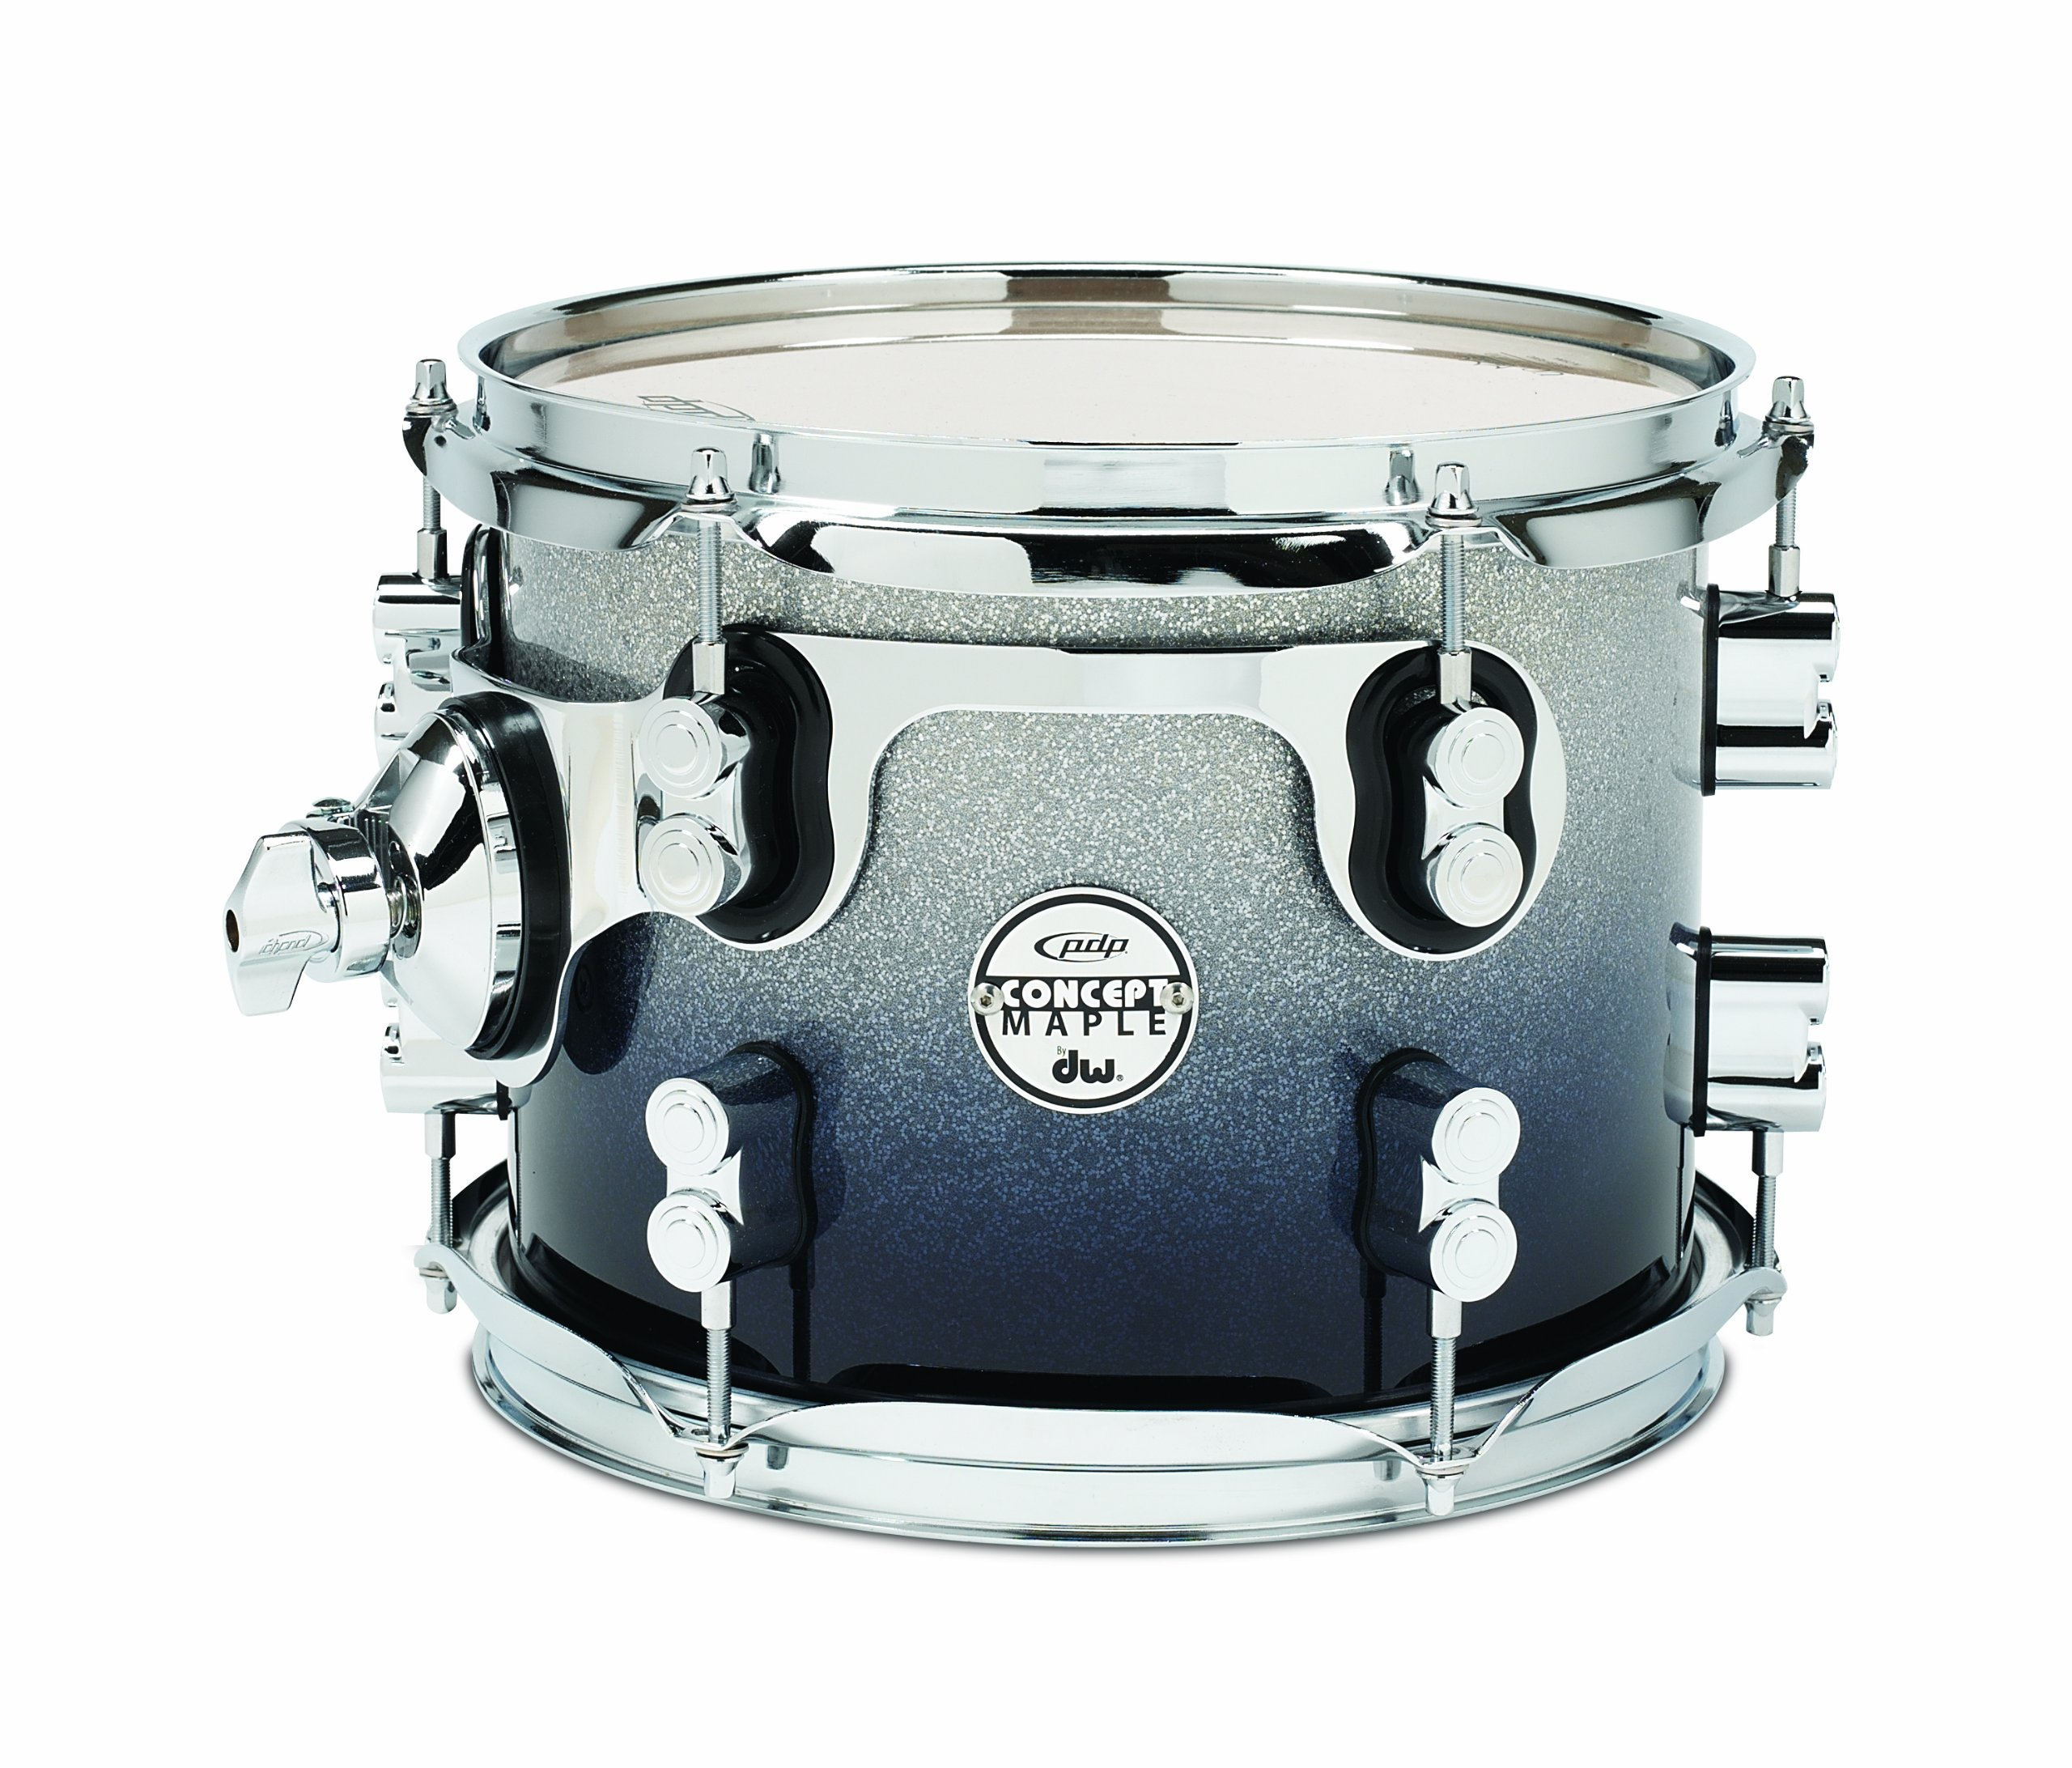 Pacific Drums PDCM0810STSB 8 x 10 Inches Tom with Chrome Hardware - Silver to Black Fade by Pacific Drums